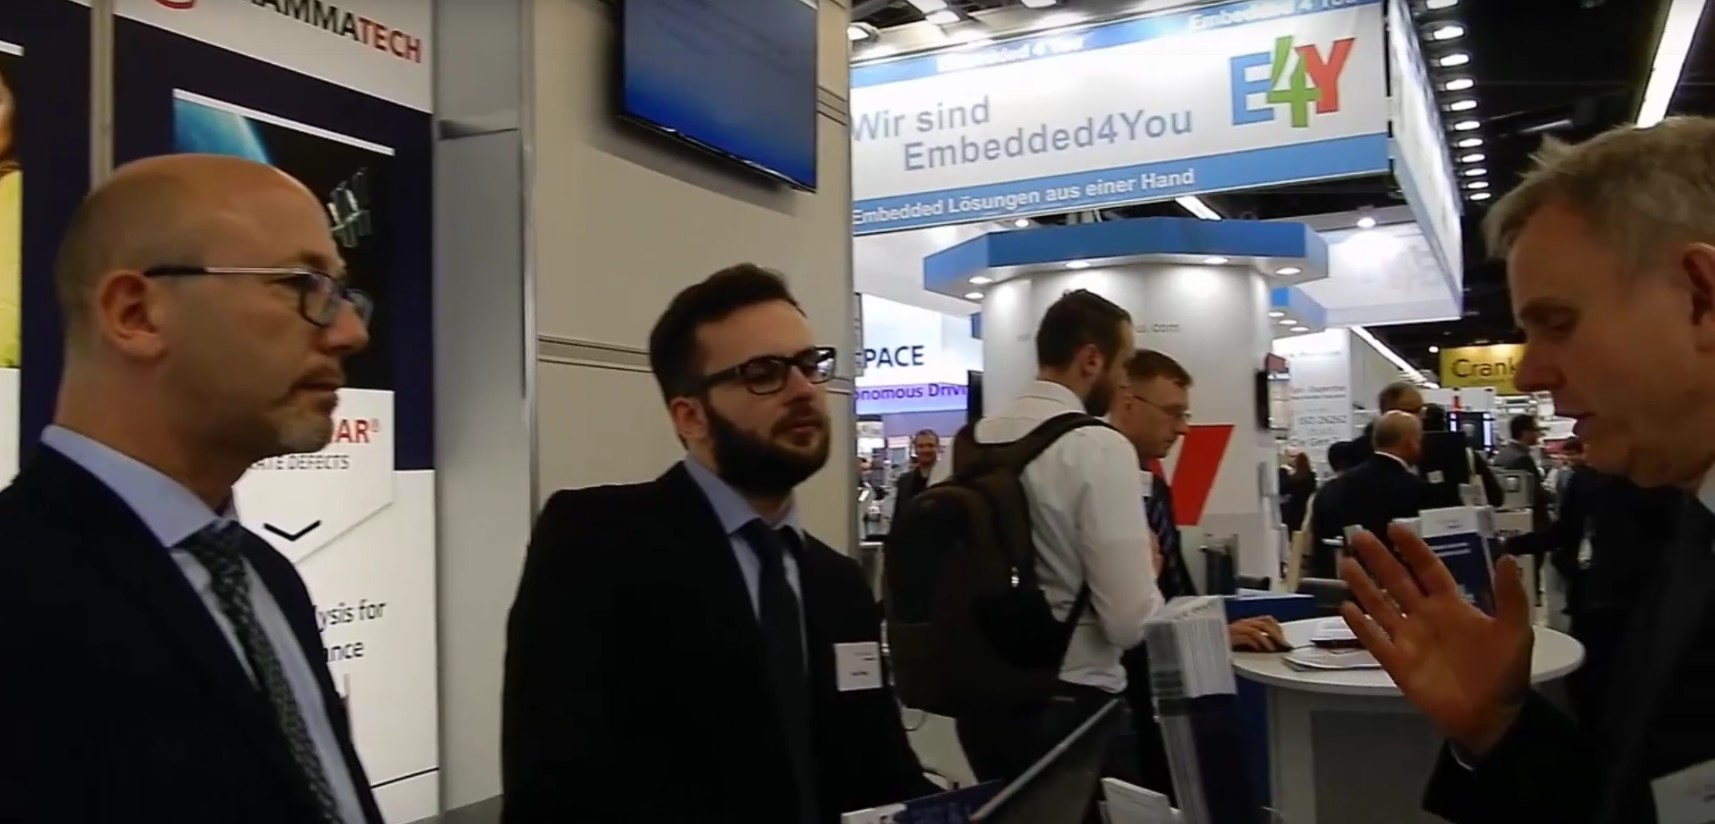 Verifysoft at Embedded World 2019